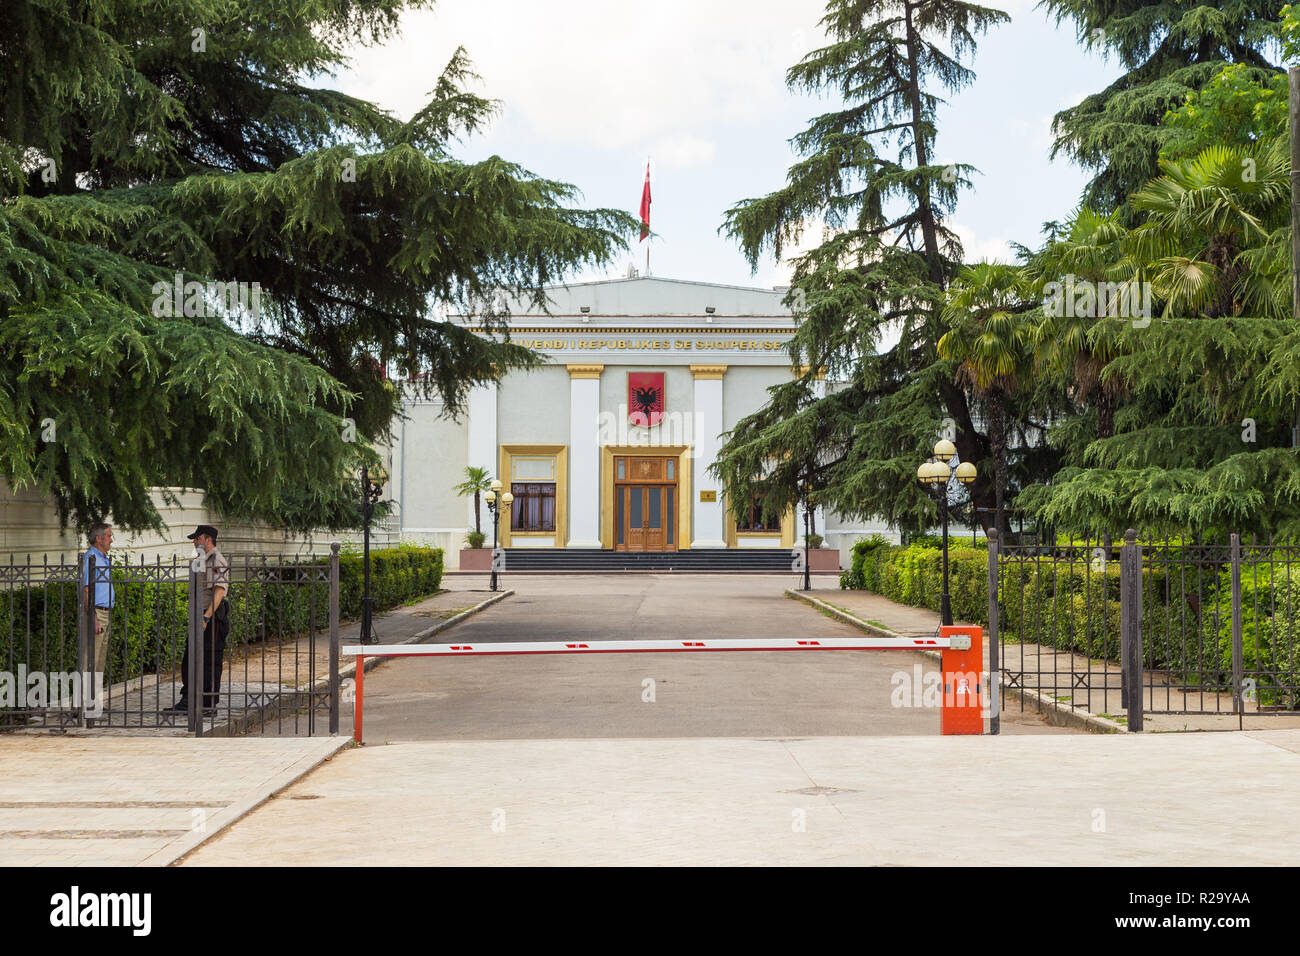 Tirana, Albania- 01 July 2014: Government building with albanian emblem.Tirana is the capital and most populous city of Albania. - Stock Image